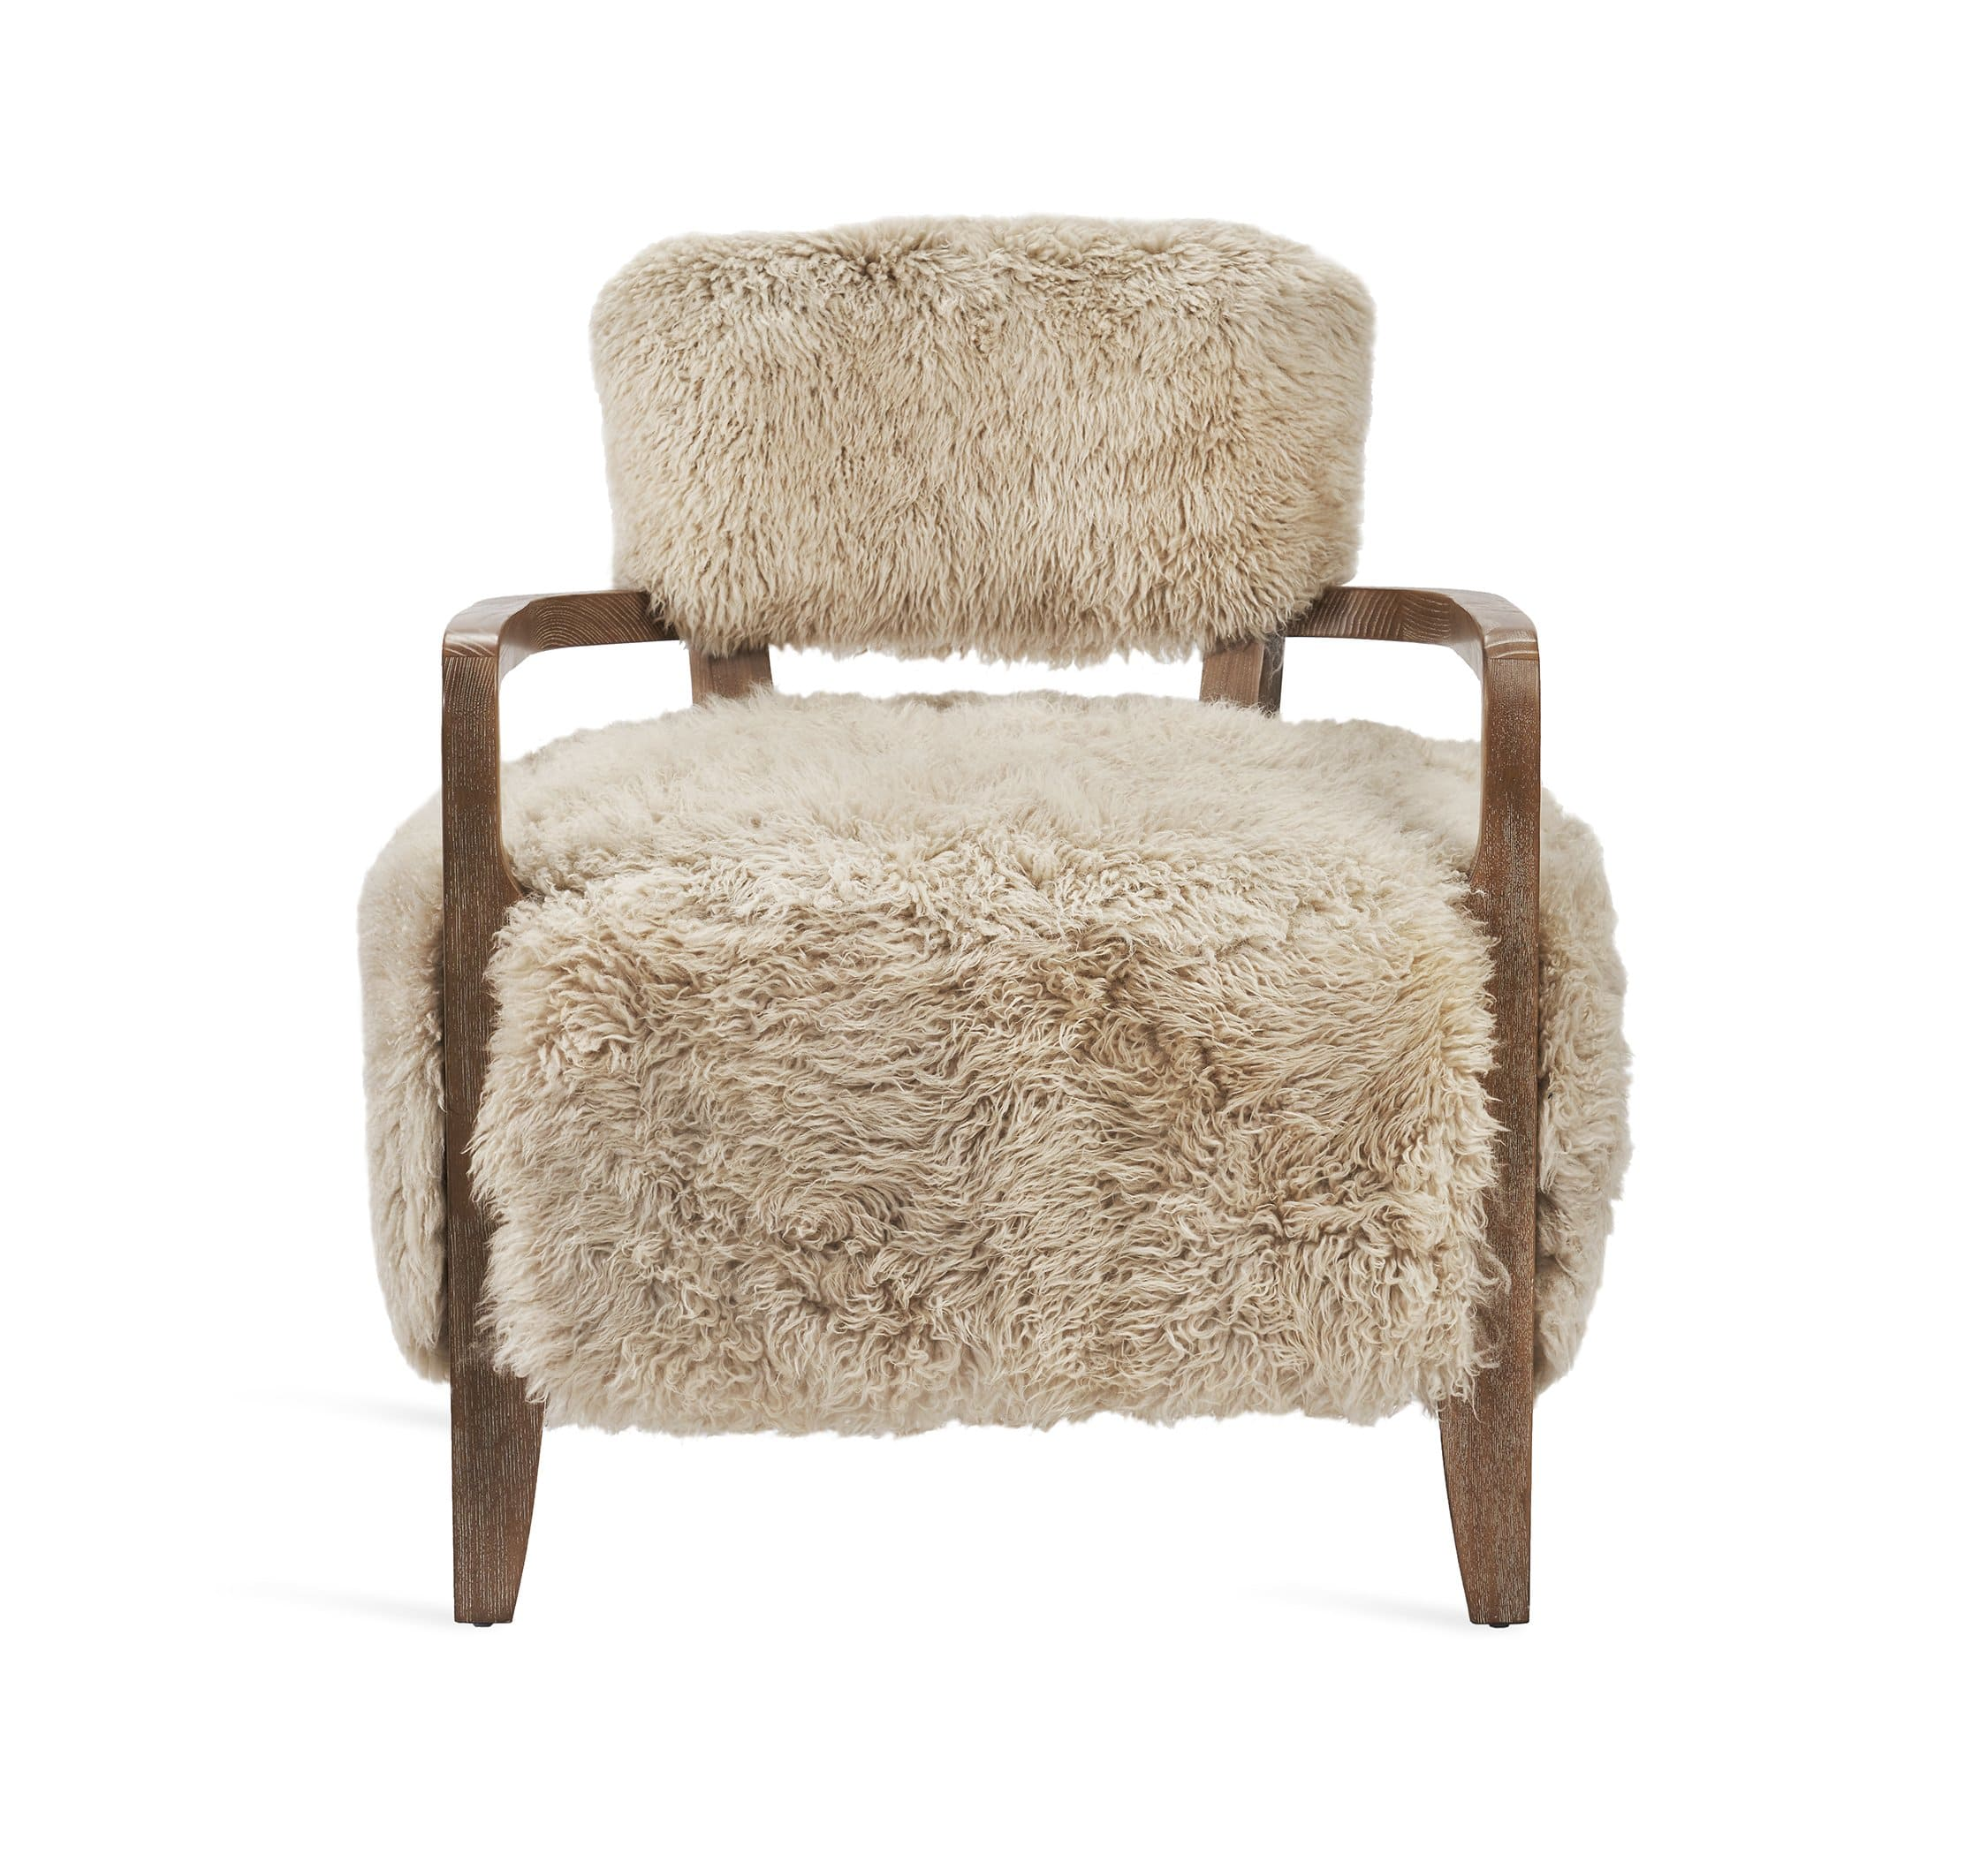 Interlude Home Royce Lounge Chair - Autumn Brown & Taupe